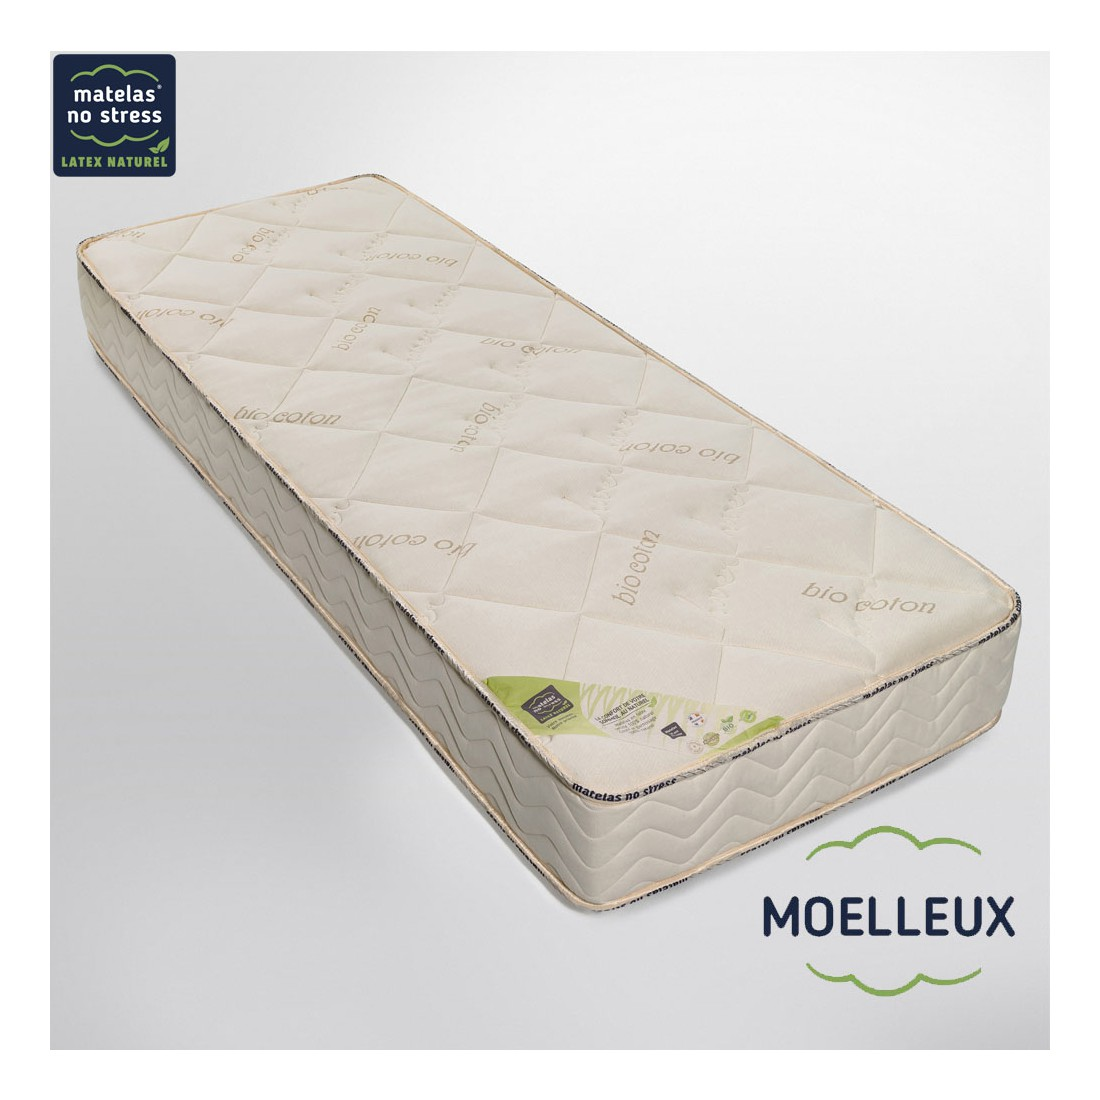 matelas 90x200 matelas junior active clim 90x200 achat vente matelas matelas enfant norway. Black Bedroom Furniture Sets. Home Design Ideas